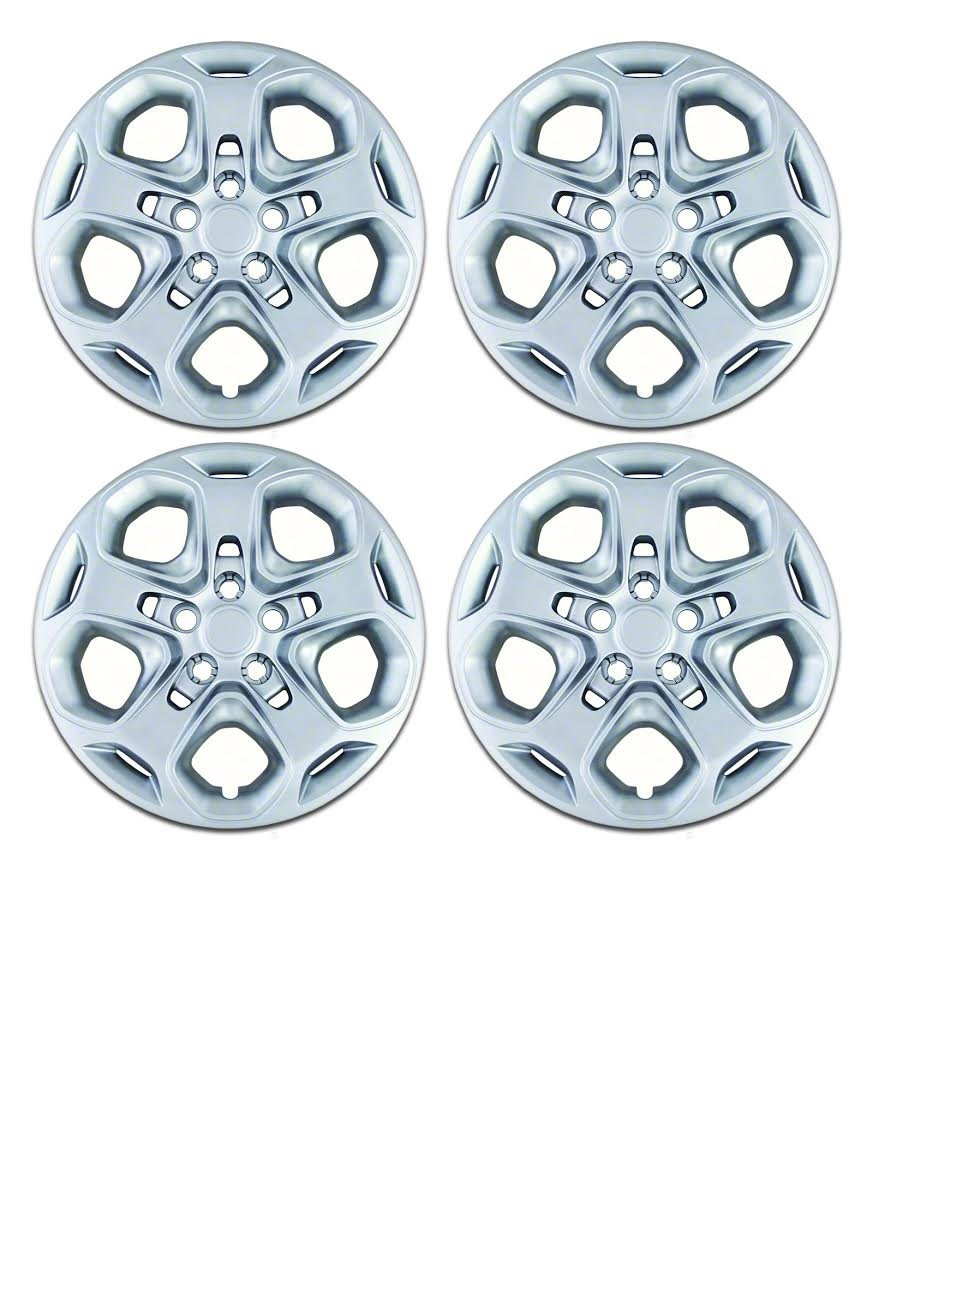 Set of 4 Silver 17 Inch Ford Fusion 5 Spoke Hubcap Wheel Covers w/ Push On Retention System - Aftermarket: IWC457/17S